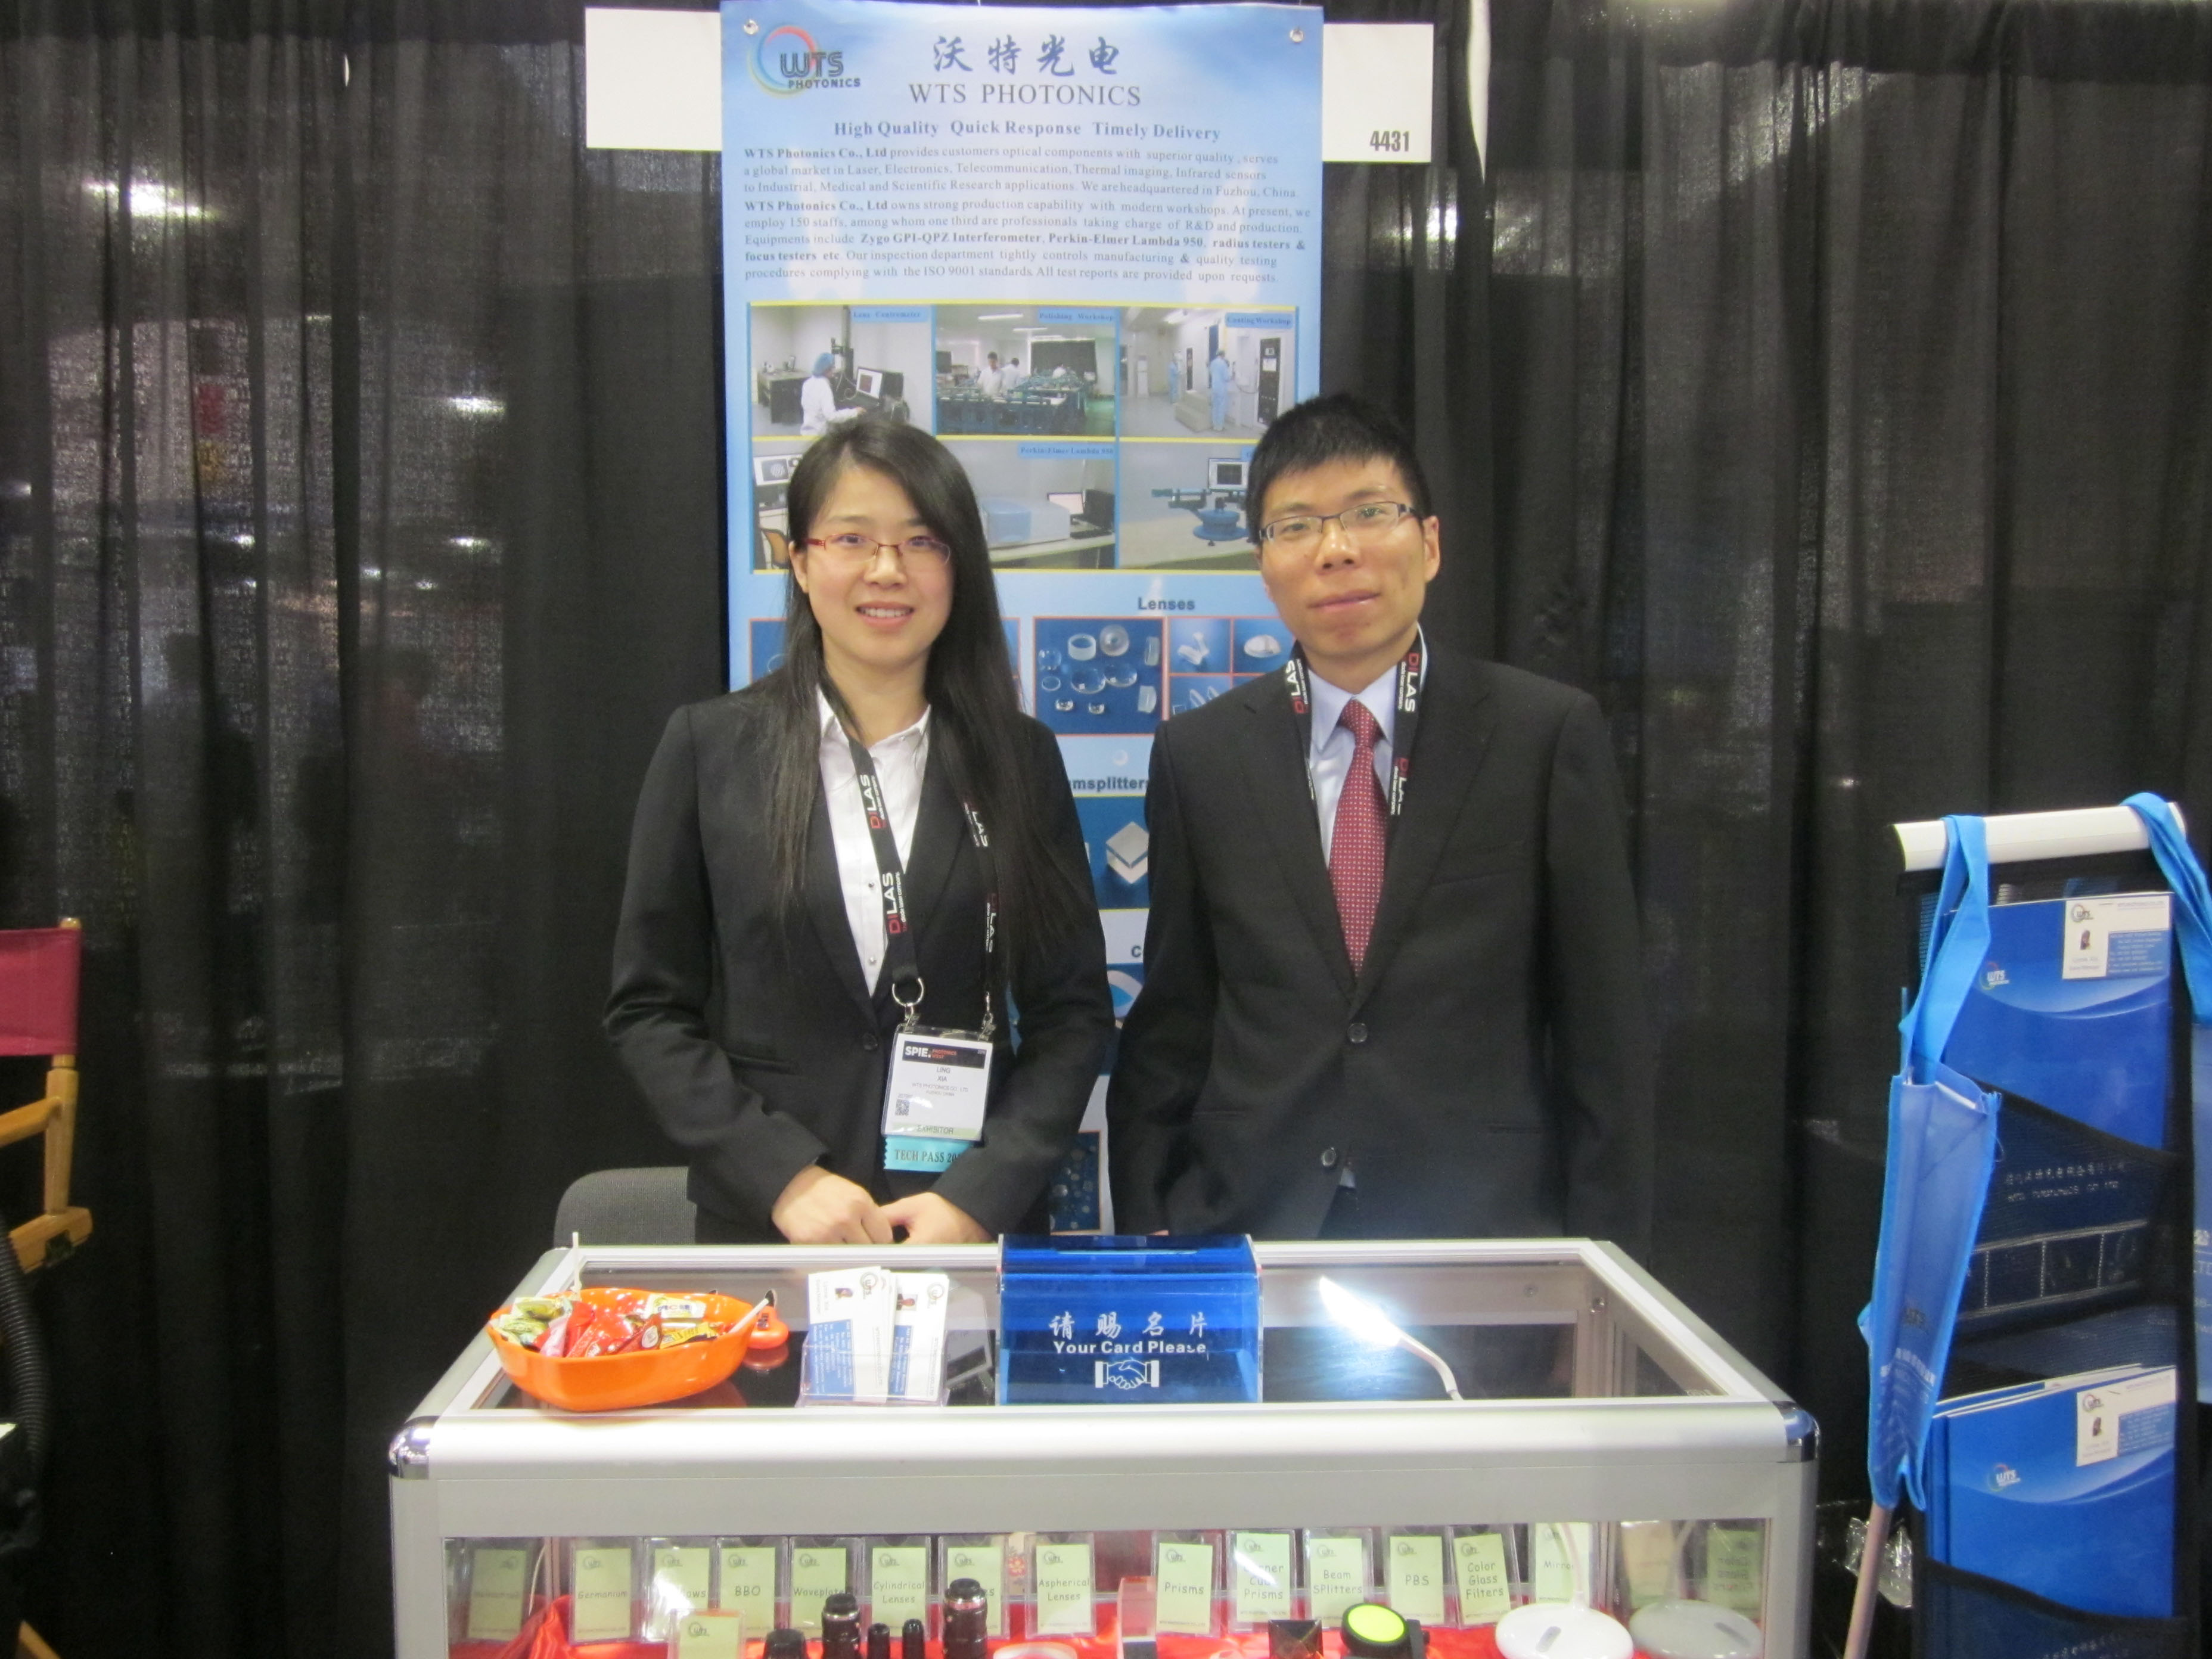 WTS Photonics Has Successfully Participated In PHOTONIS WEST 2016